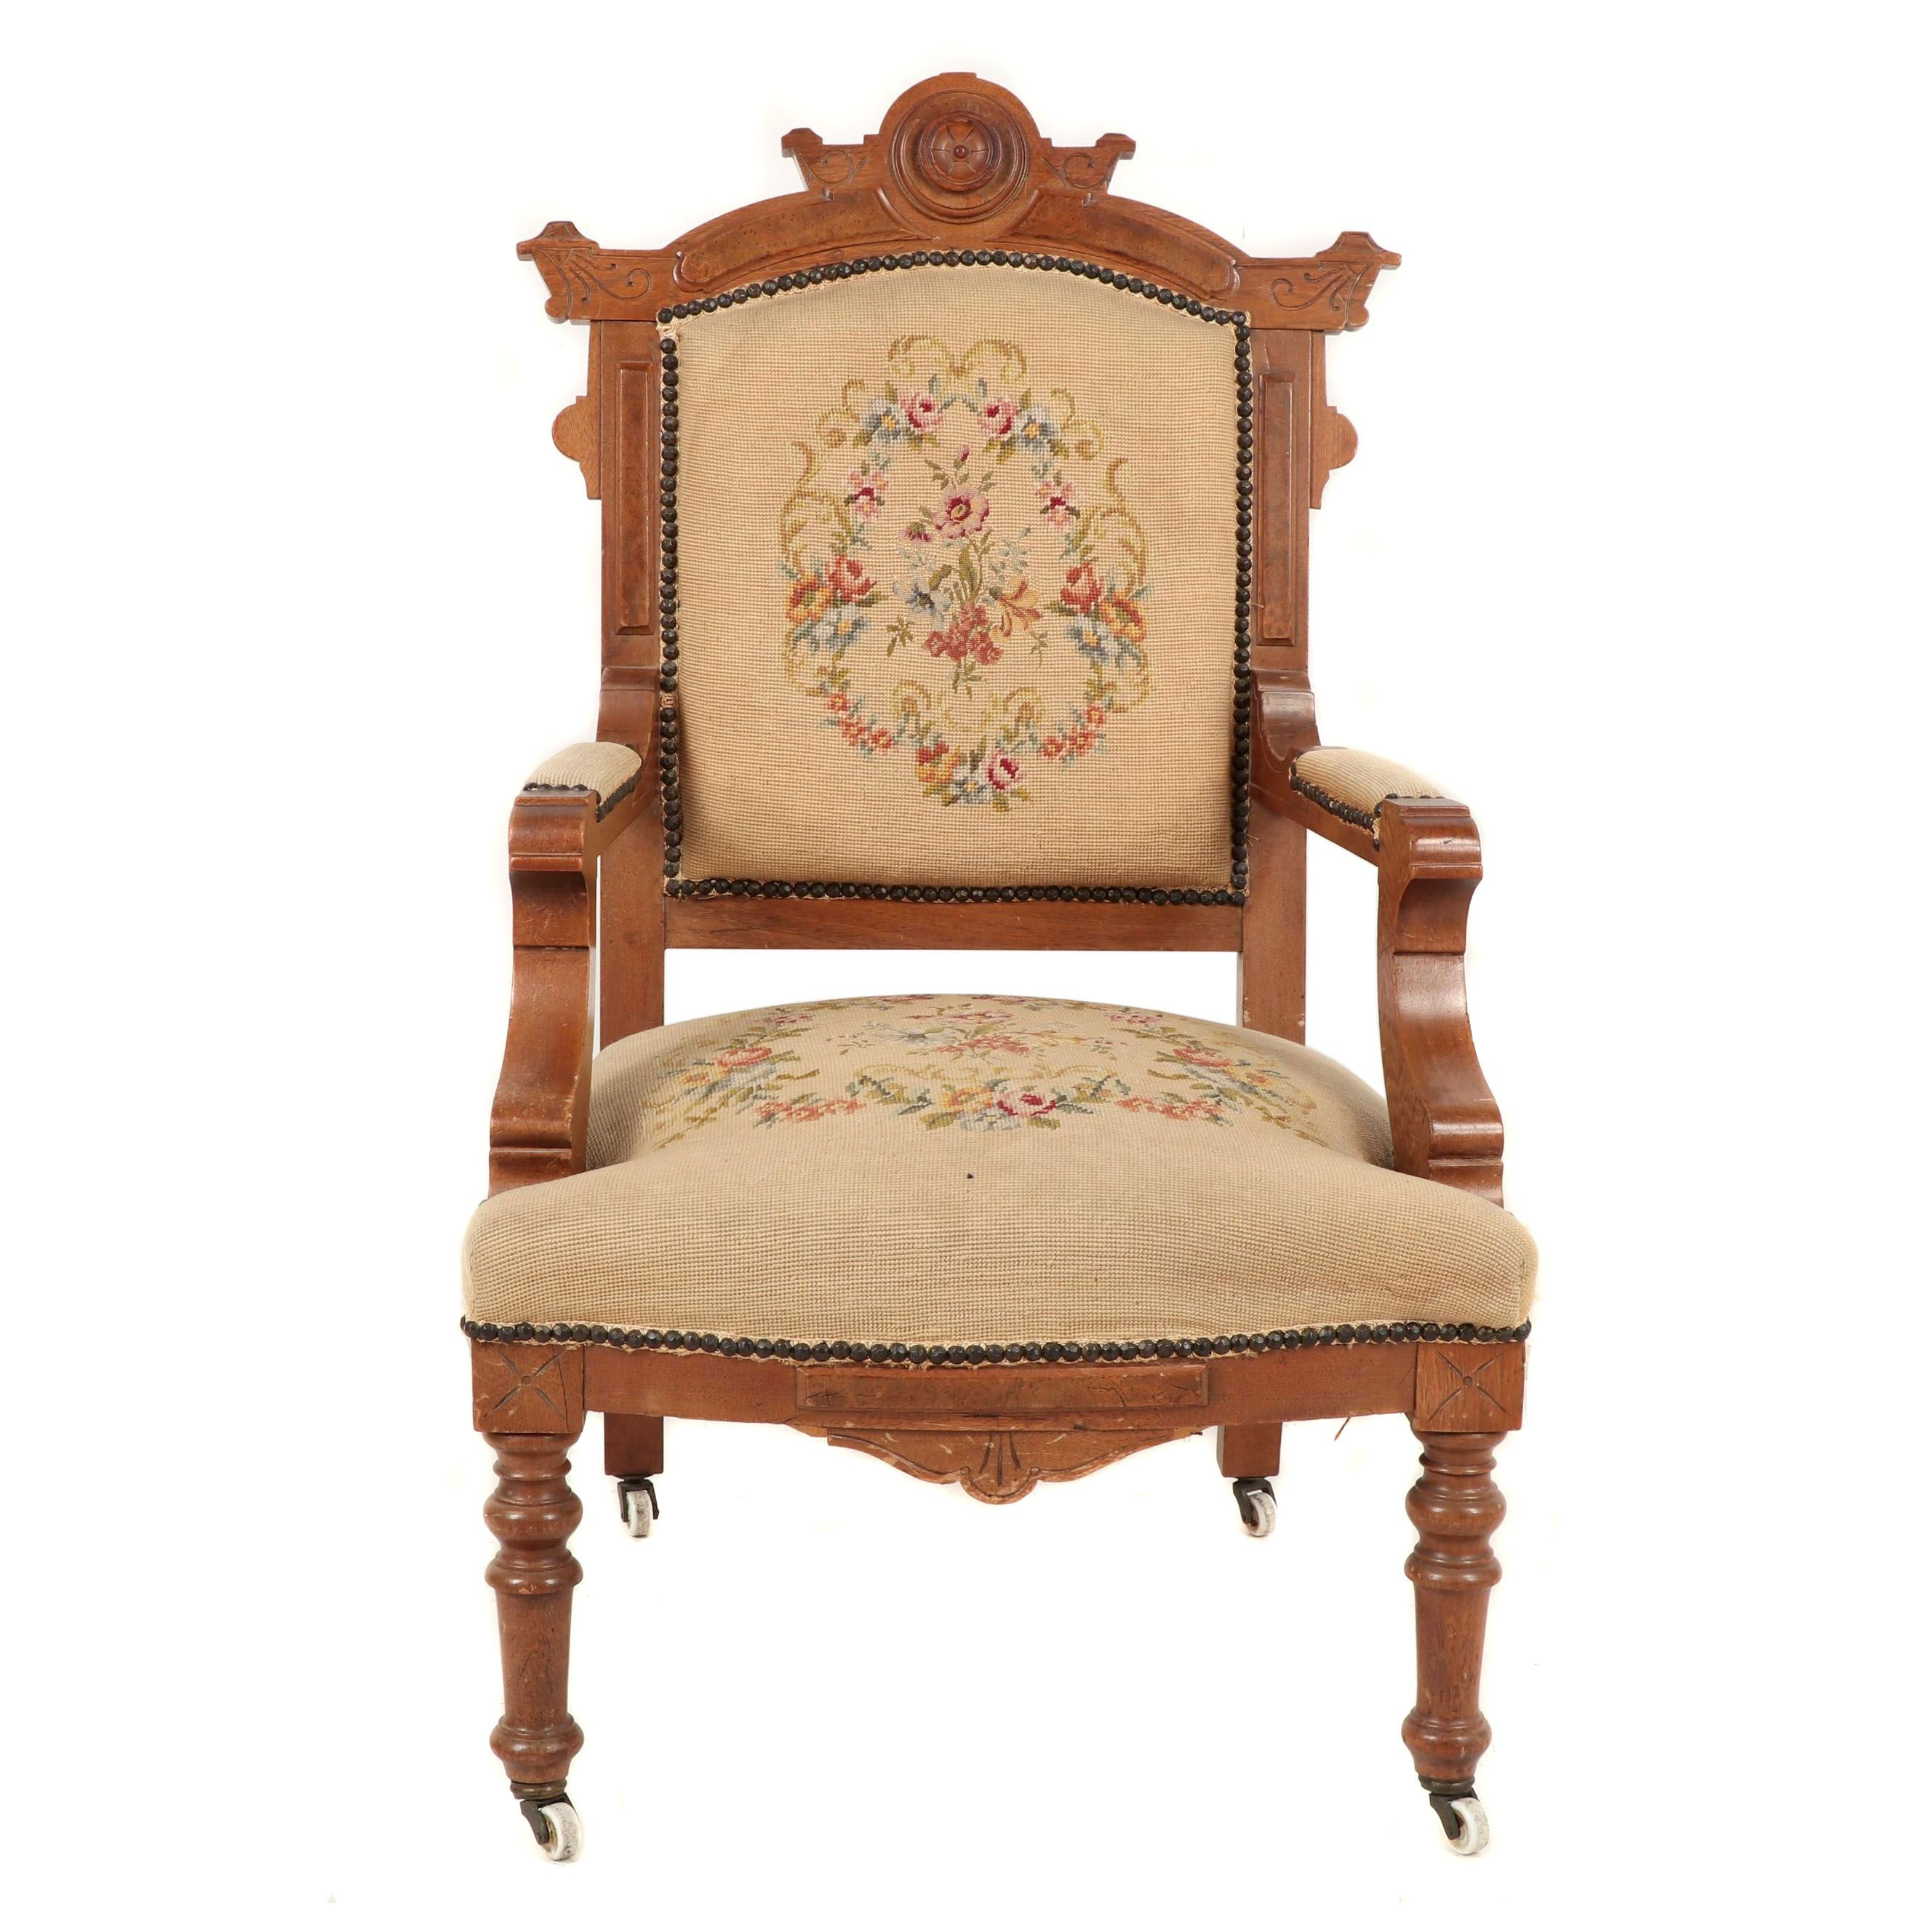 Victorian Eastlake Carved Walnut Armchair with Needlepoint Upholstery, 19th c.